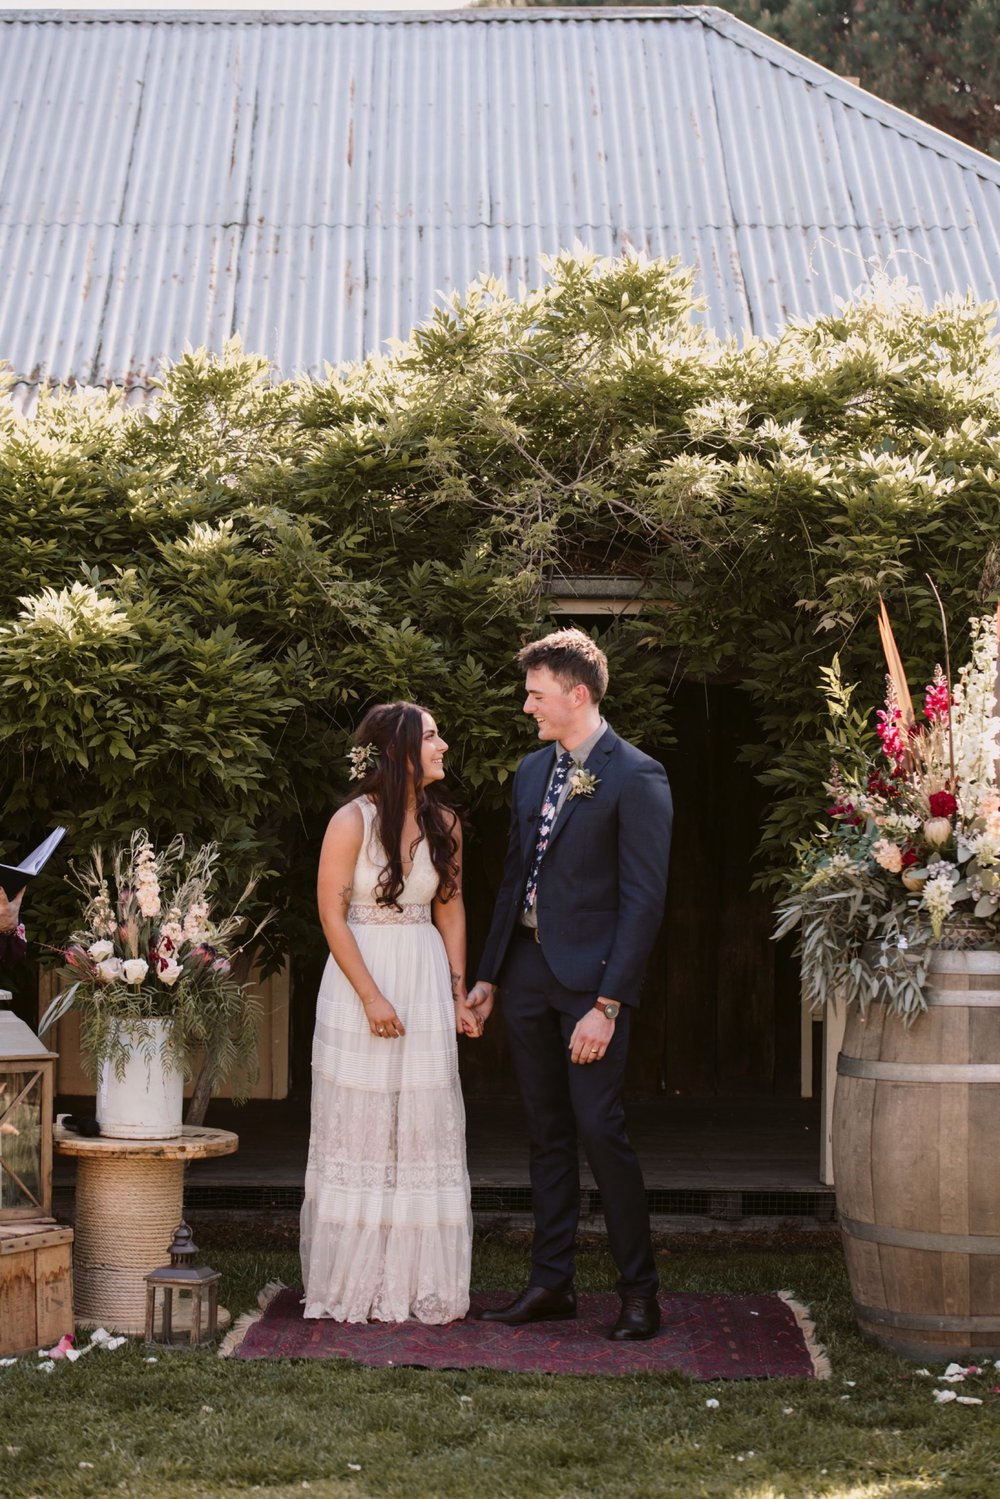 Baxter Barn Wedding Photography Mornington Peninsula60.jpg